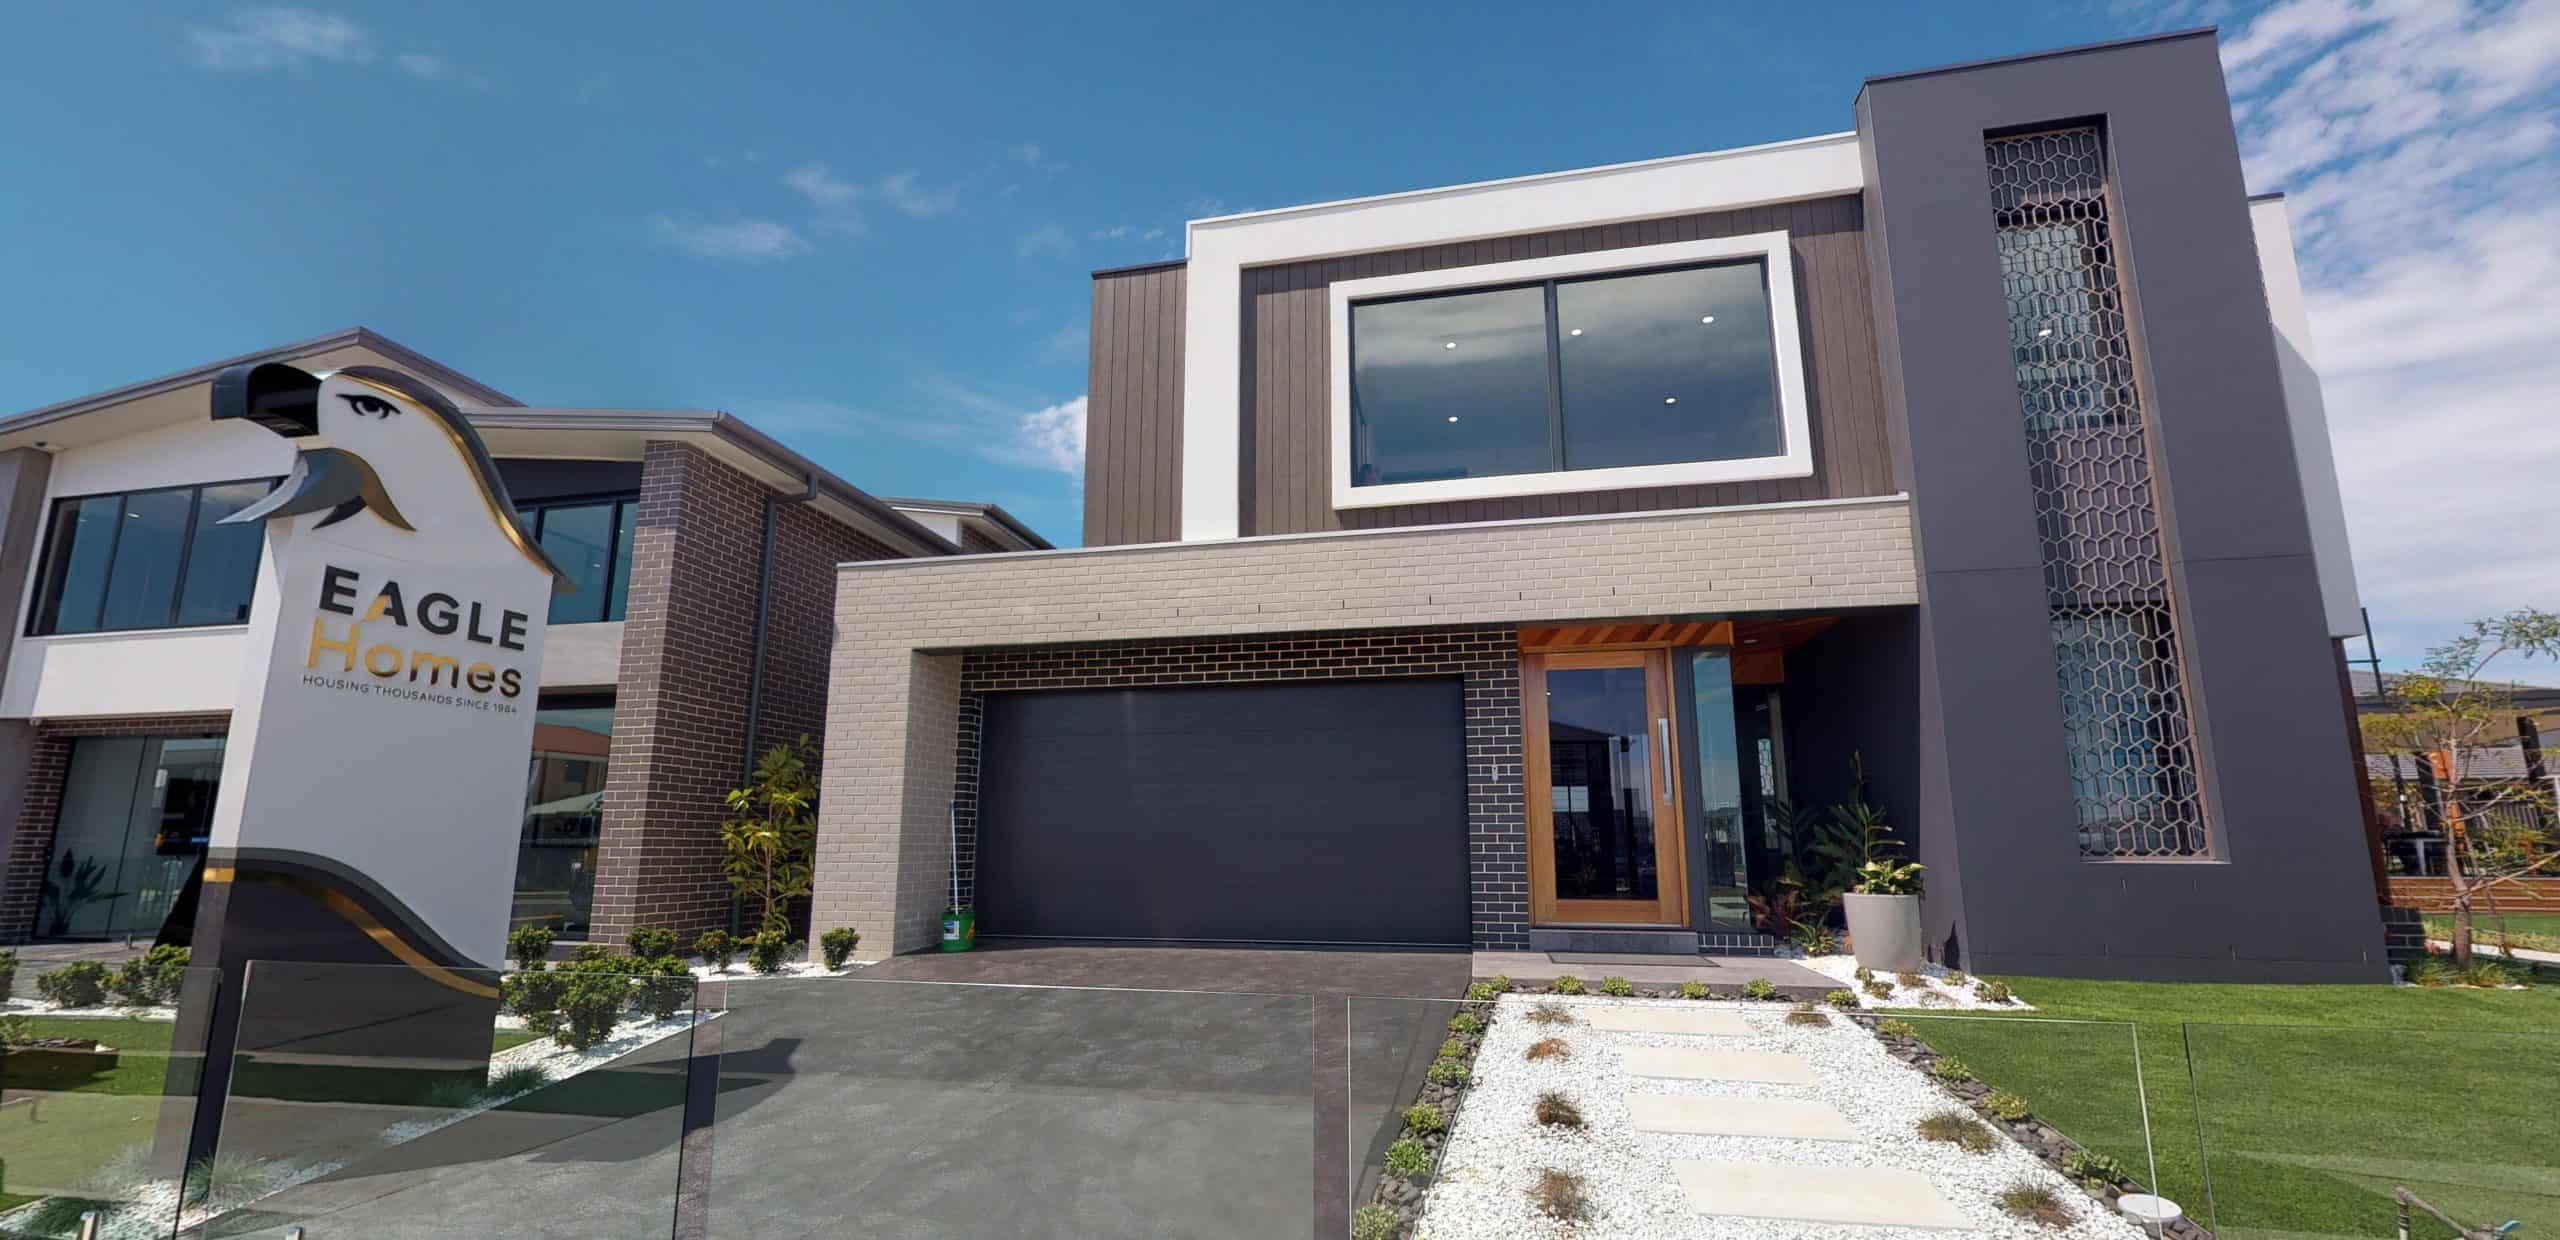 3DInsights-EagleHomes-projects